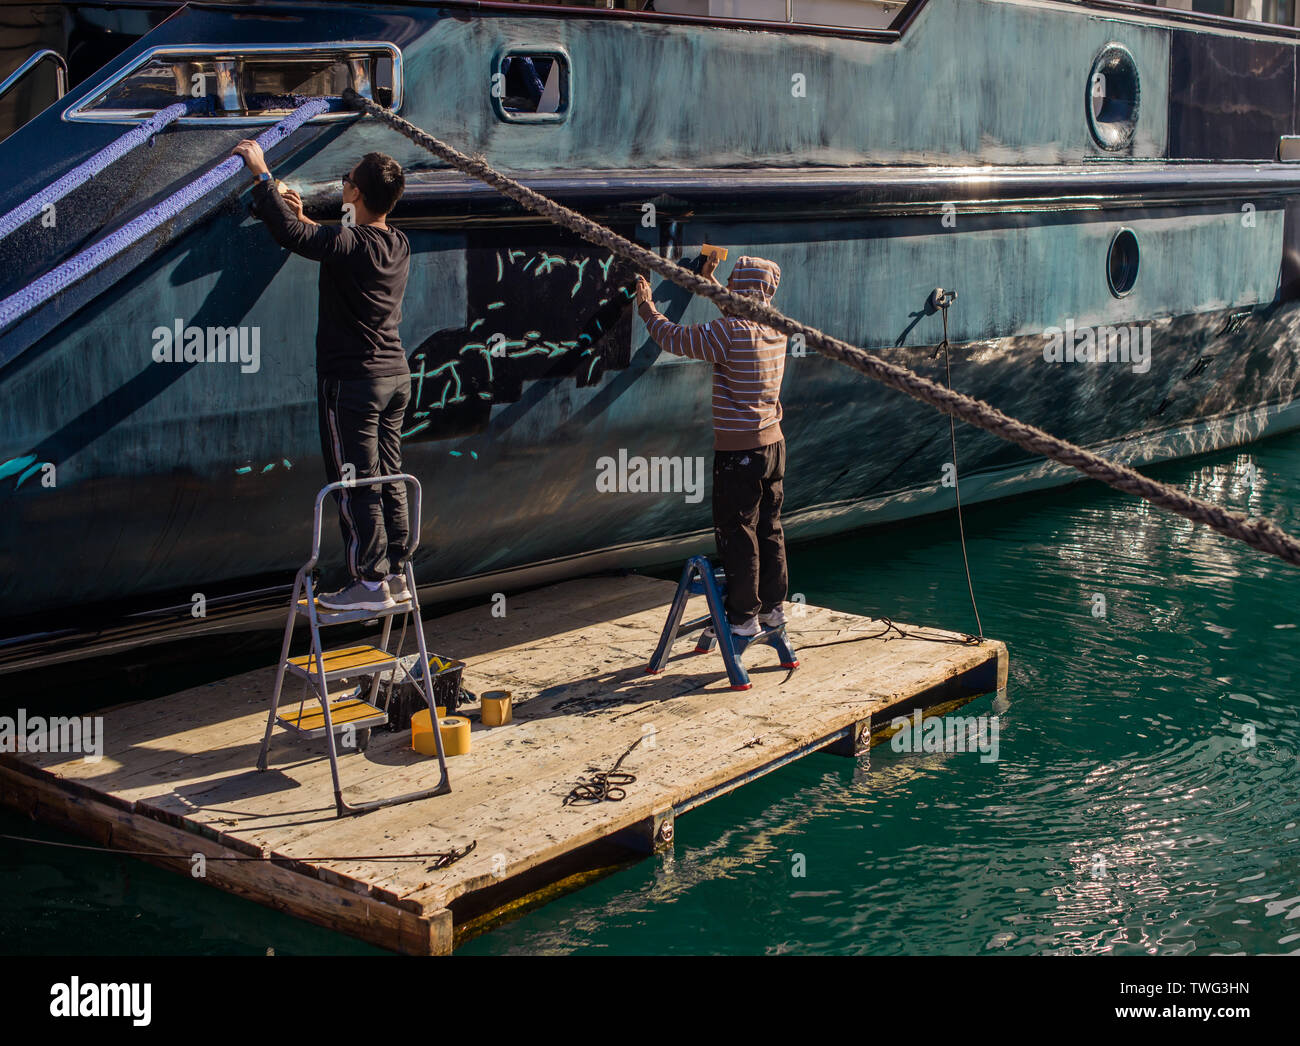 Preparation of the boat for painting. - Stock Image